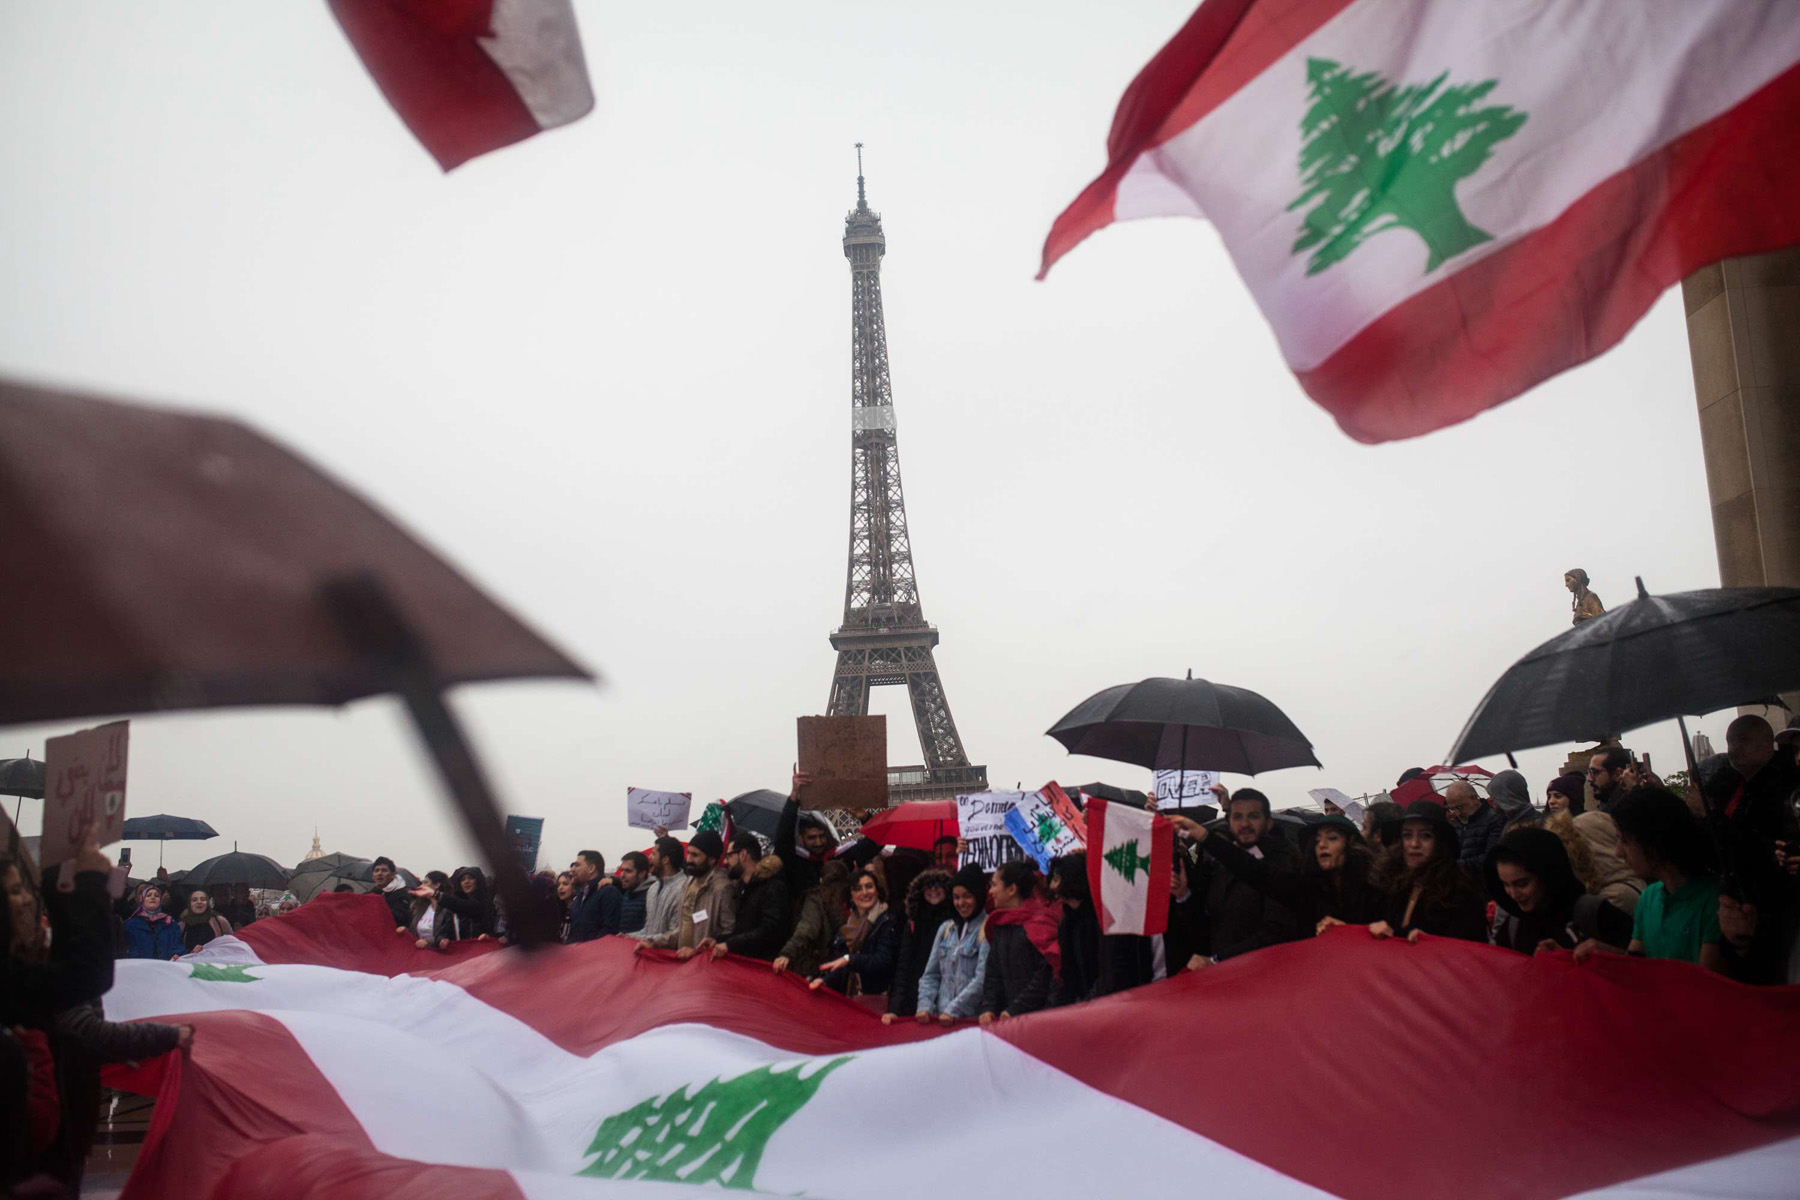 Rude awakening. People shout slogans and wave the Lebanese flag as they take part in a rally in Paris to support the protests in Lebanon, last October. (DPA)